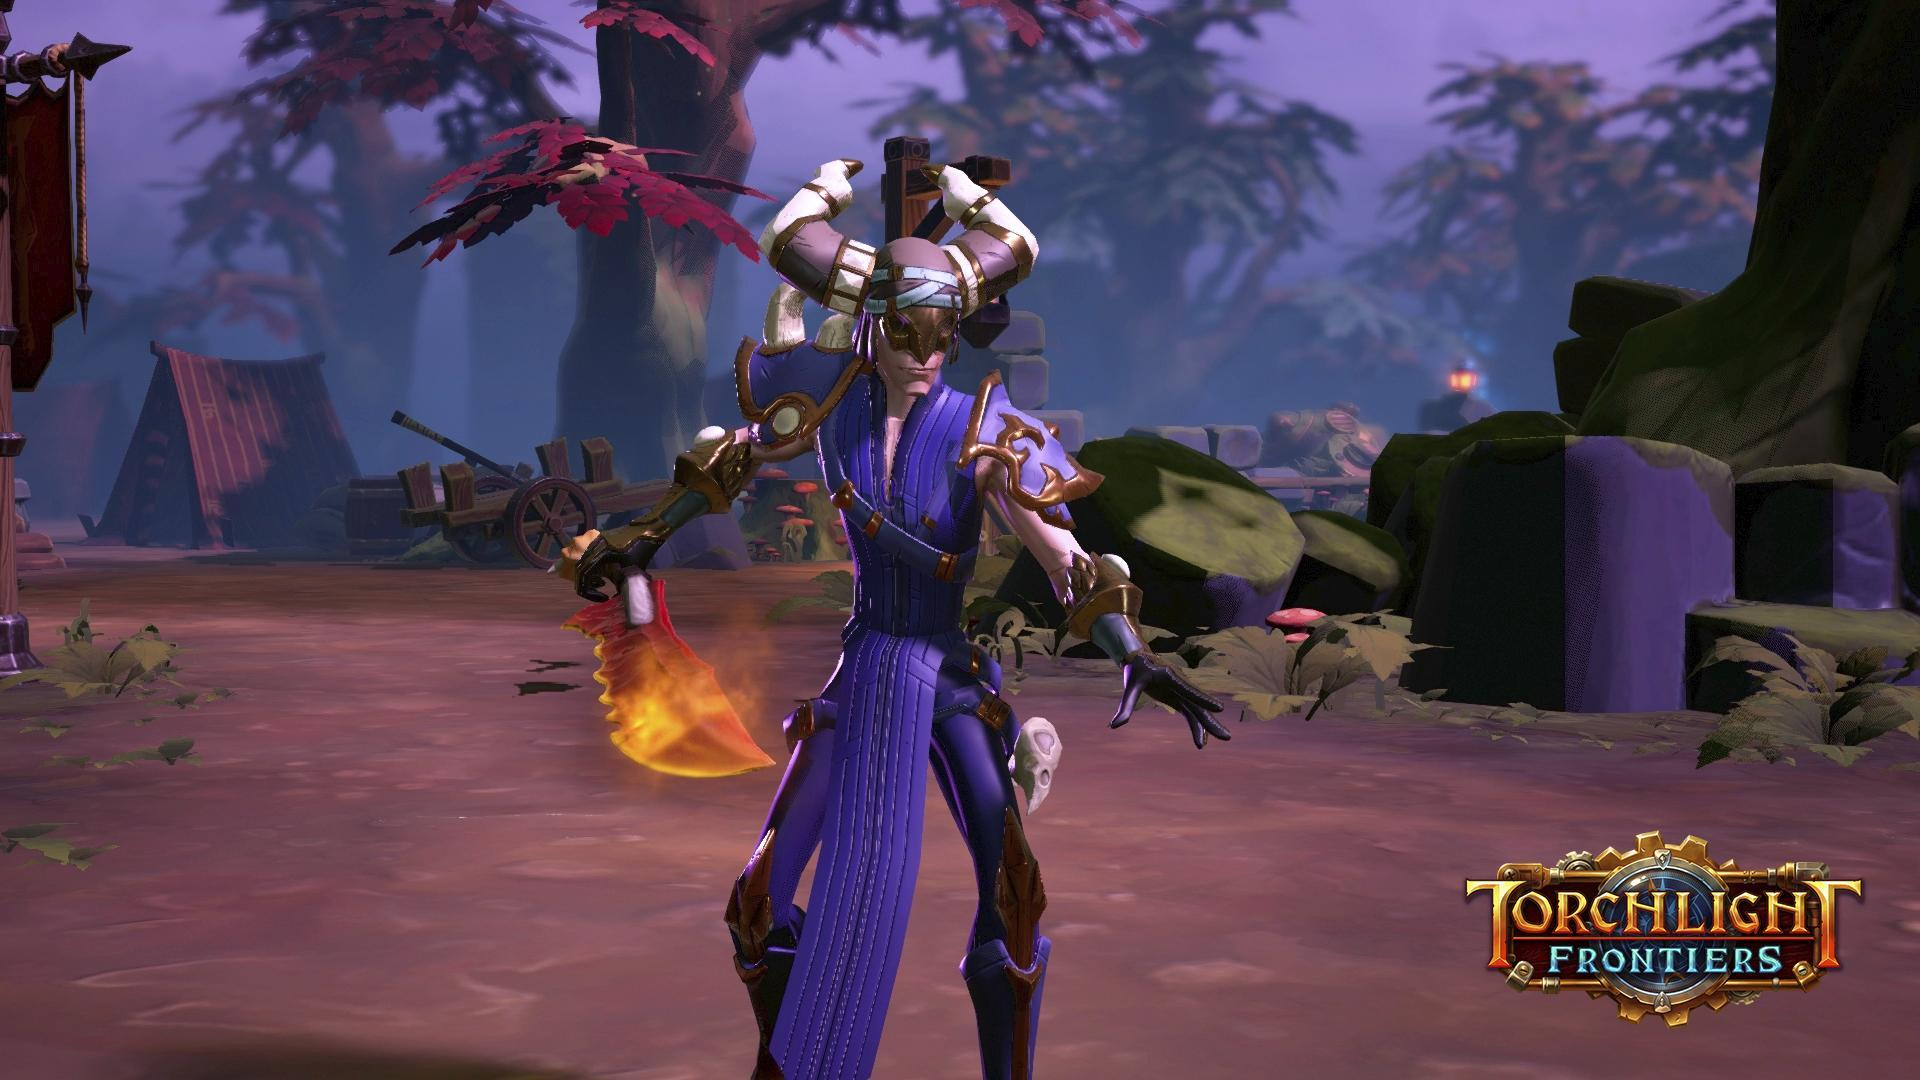 Torchlight Frontiers is free-to-play - Relic Weapon Firestriker